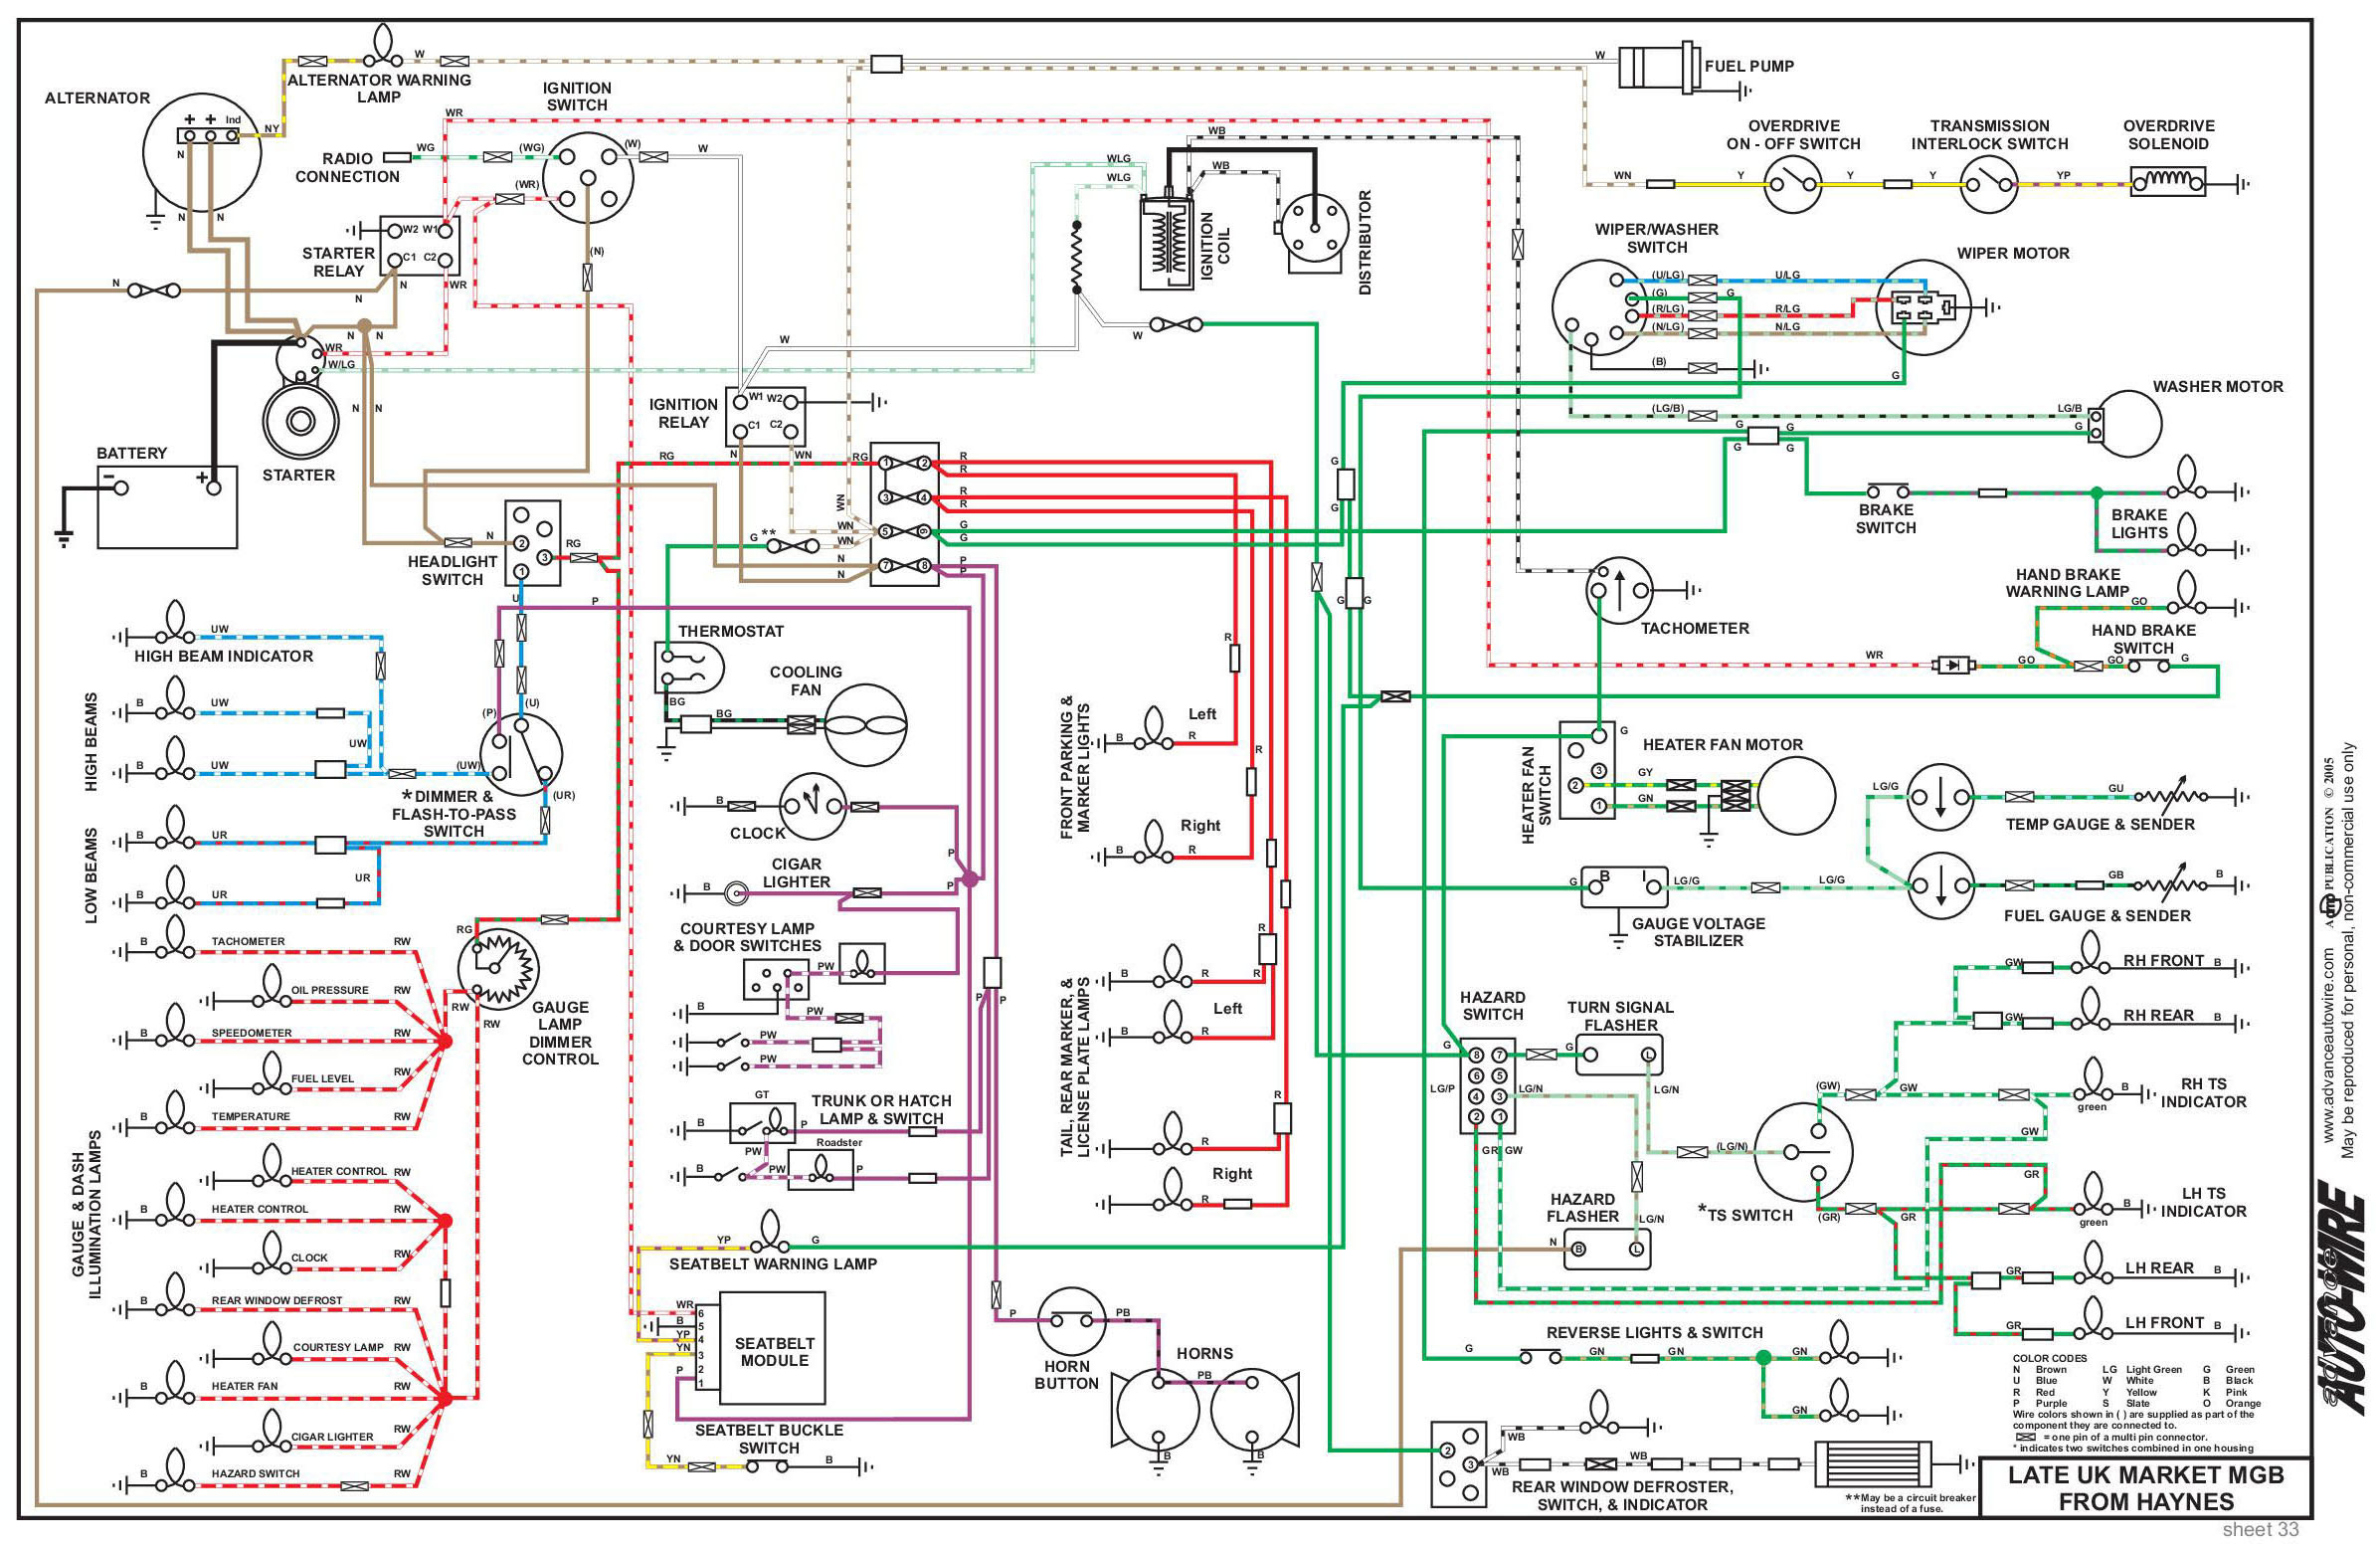 DIAGRAM] 1979 Mgb Wiring Diagram Schematic FULL Version HD Quality Diagram  Schematic - MG50DFXSCHEMATIC4215.CONTRABBASSIVERDIANI.ITContrabbassi di Simone e Damiano Verdiani